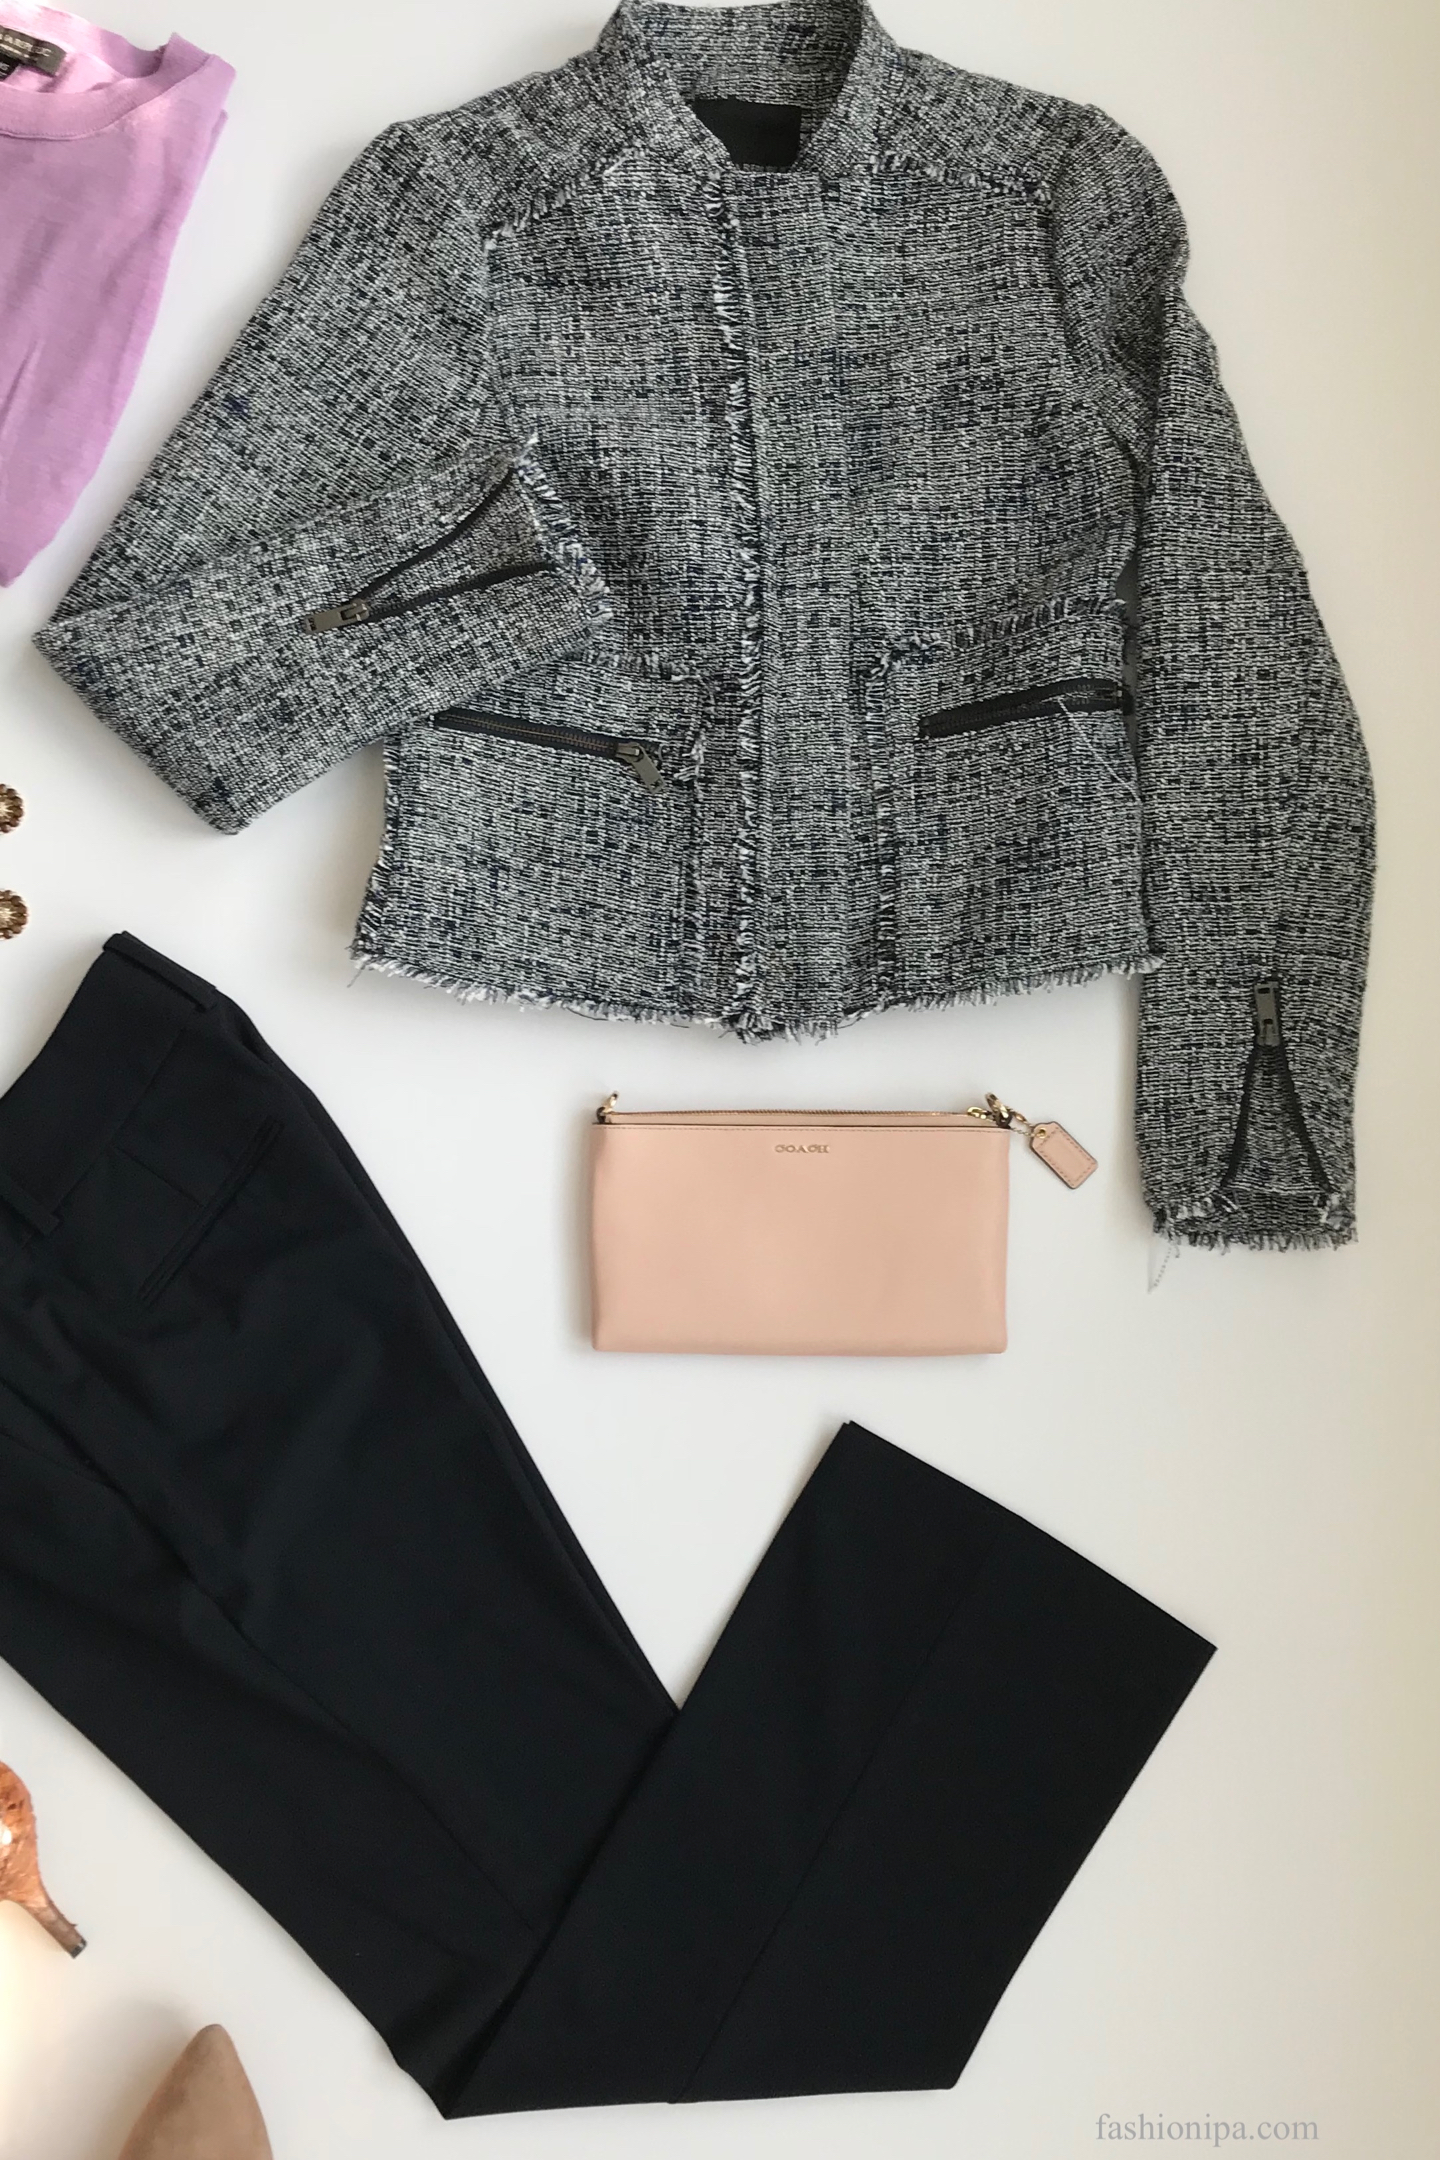 Flatlay of tweed jacket, lavender sweater, Coach clutch, navy pants, drop earrings and booties.